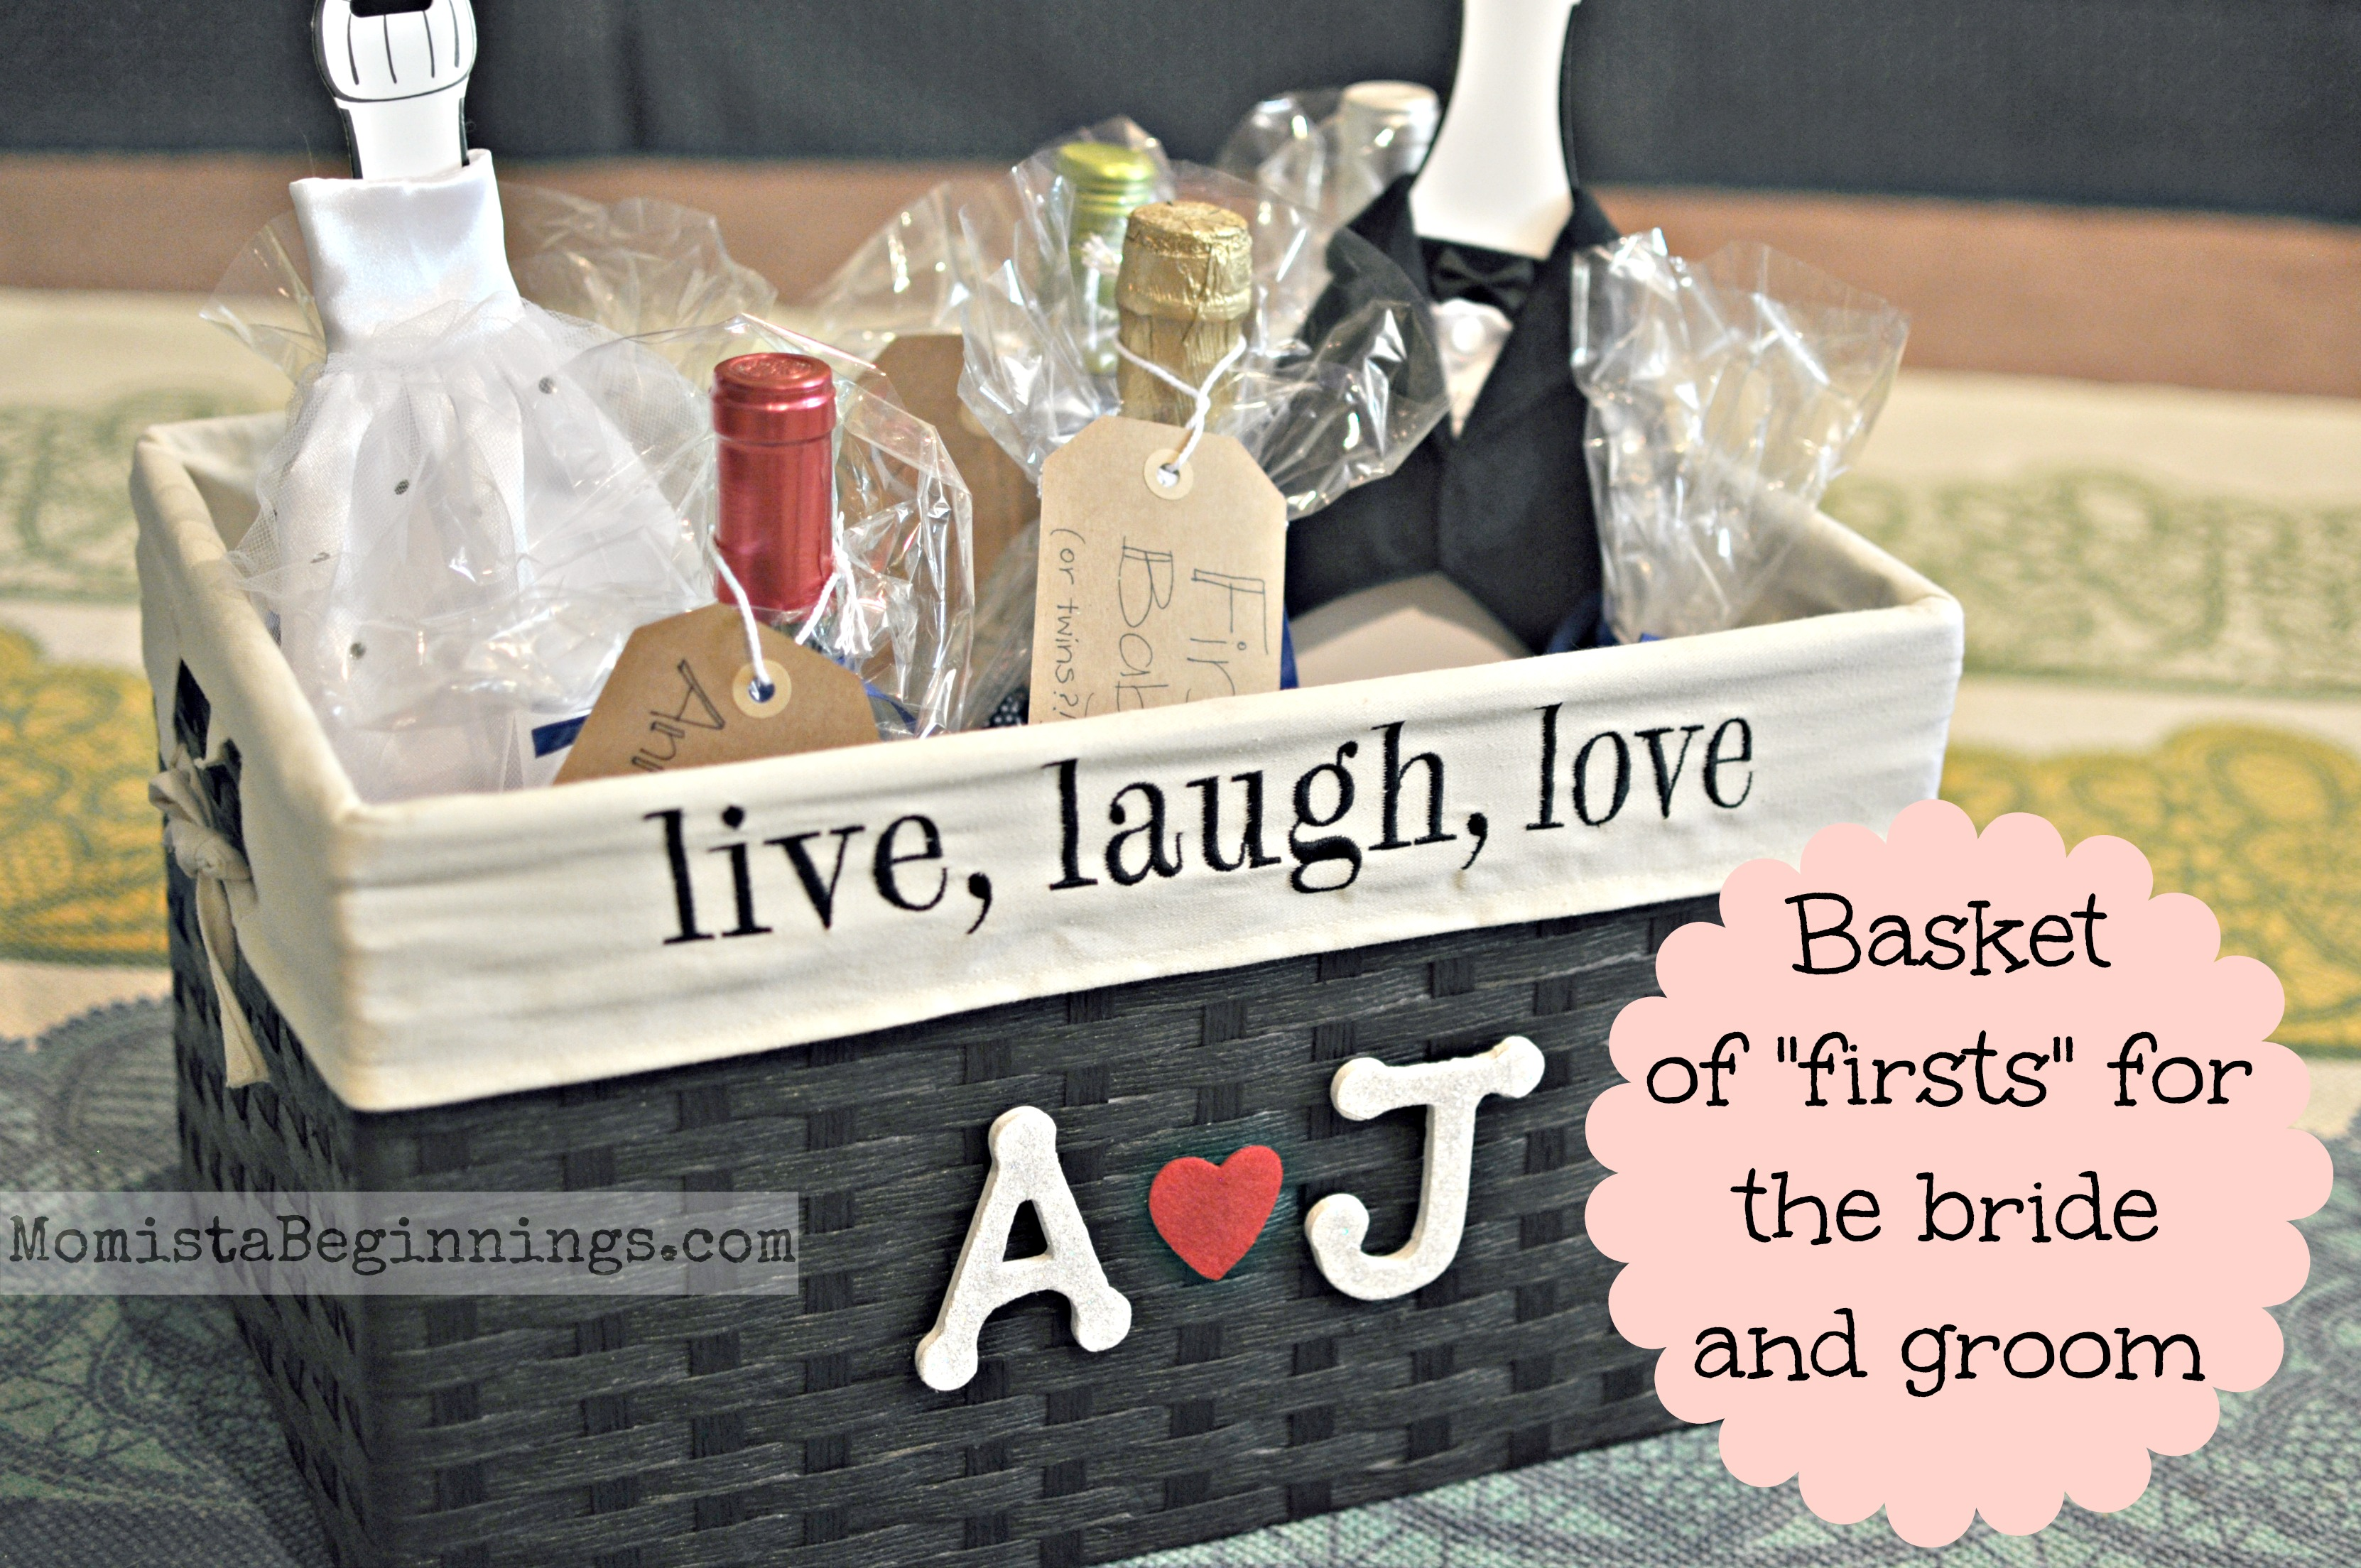 Wedding Shower Gift Ideas For The Groom : The basket and the letters on the basket (which I glued) are from ...